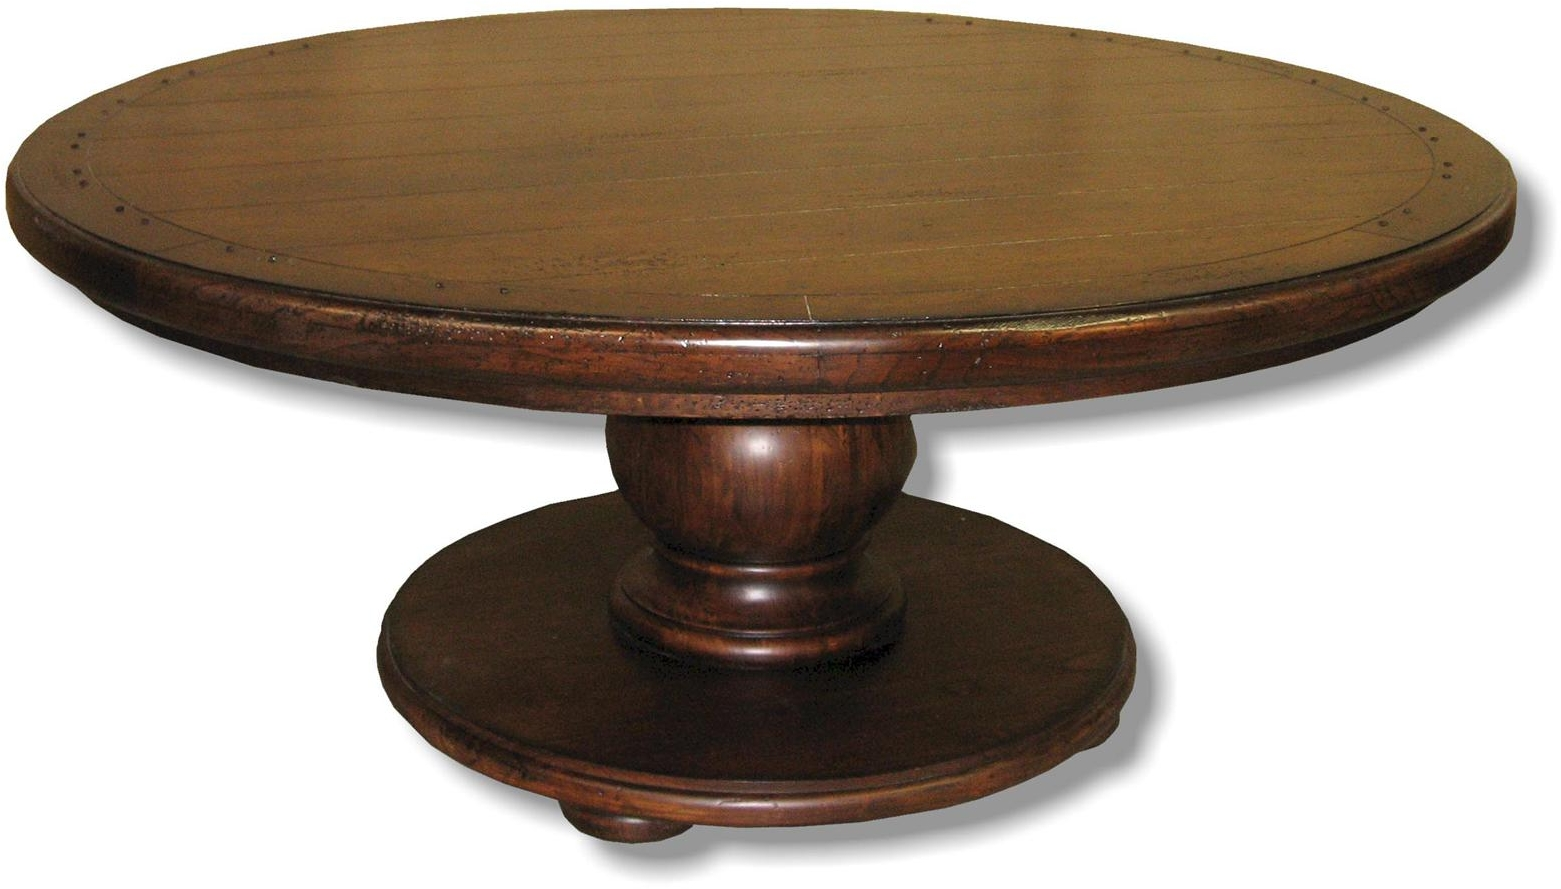 New 6 foot dining table tuscan italian round bg 36 ebay for 6 foot round dining table